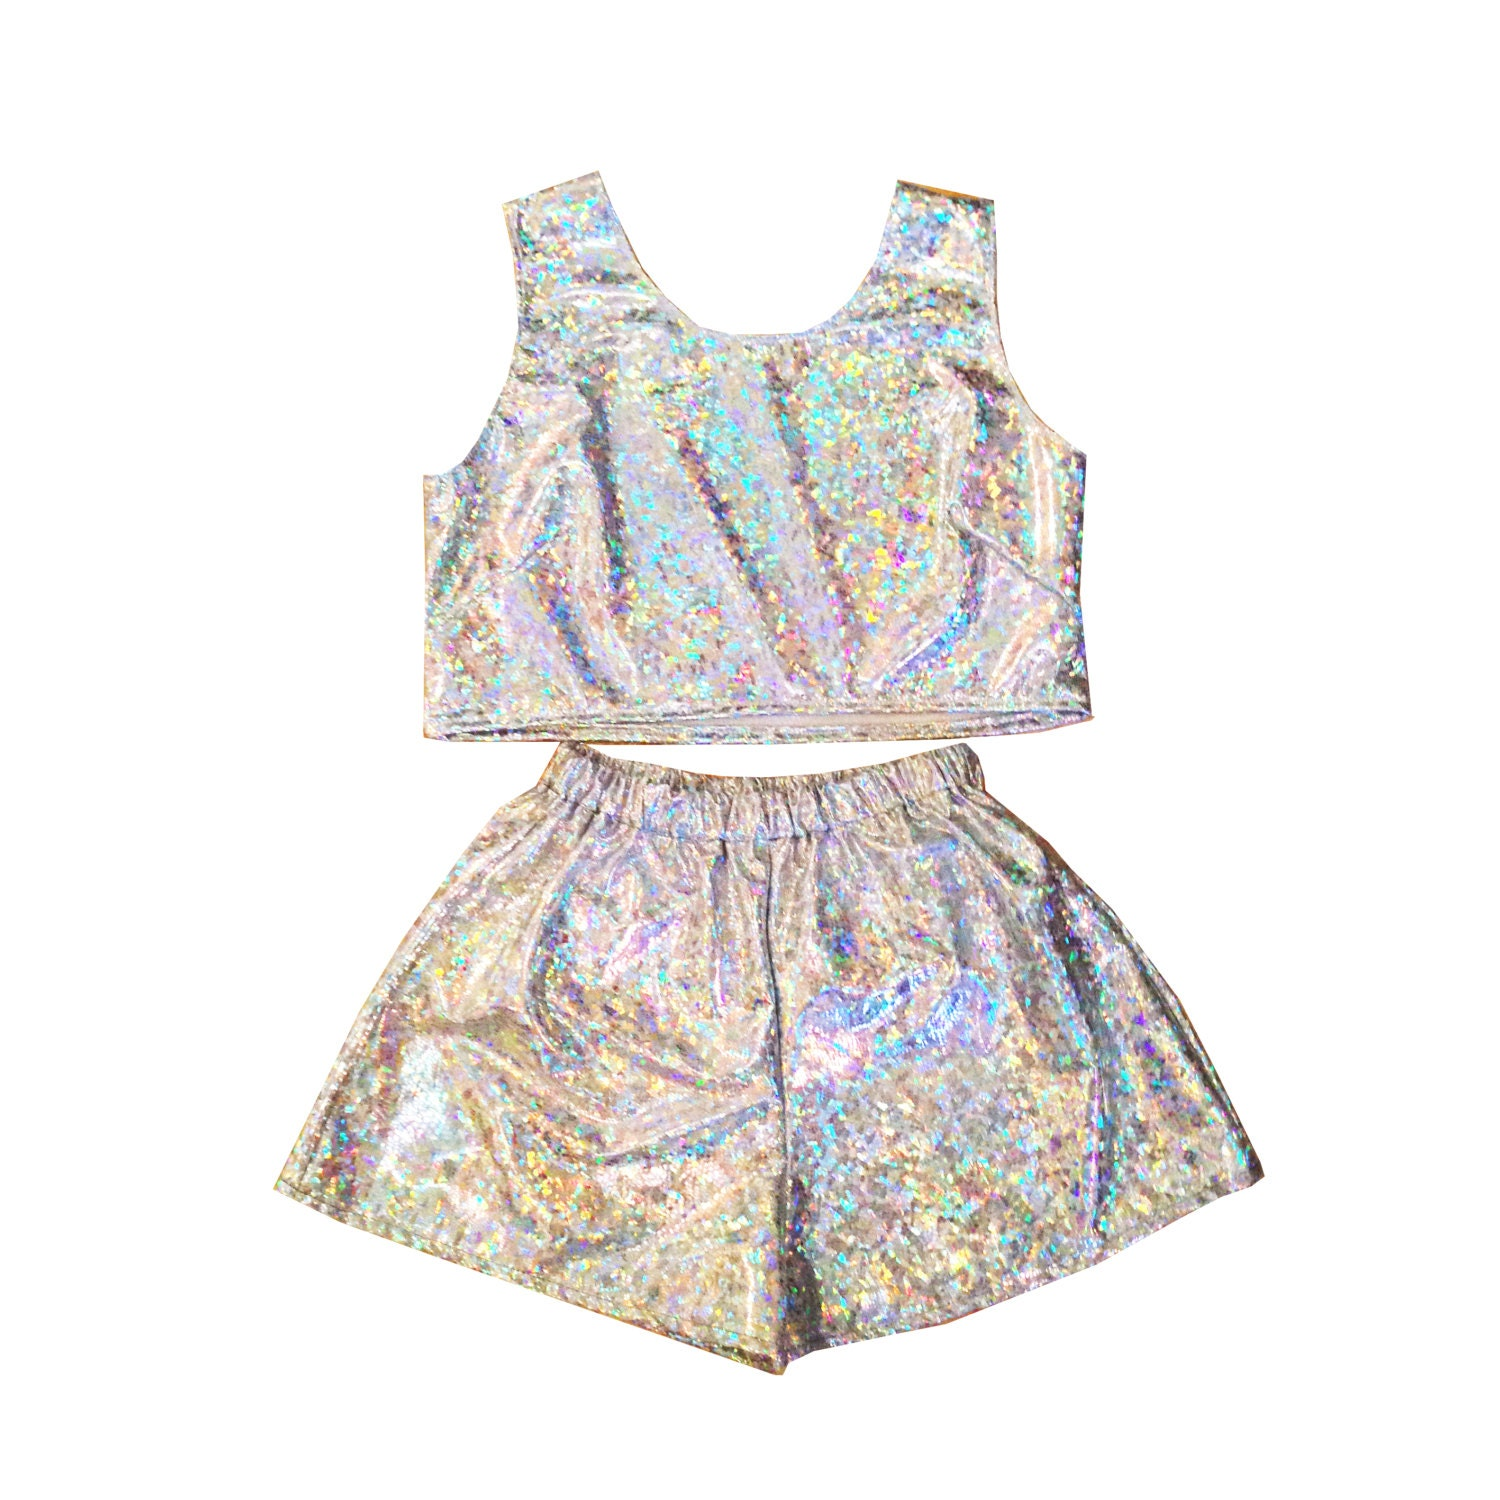 Holographic Top and Shorts Two Piece CoOrd Summer Festival Beach Party Irridescent Sparkle Twin Set